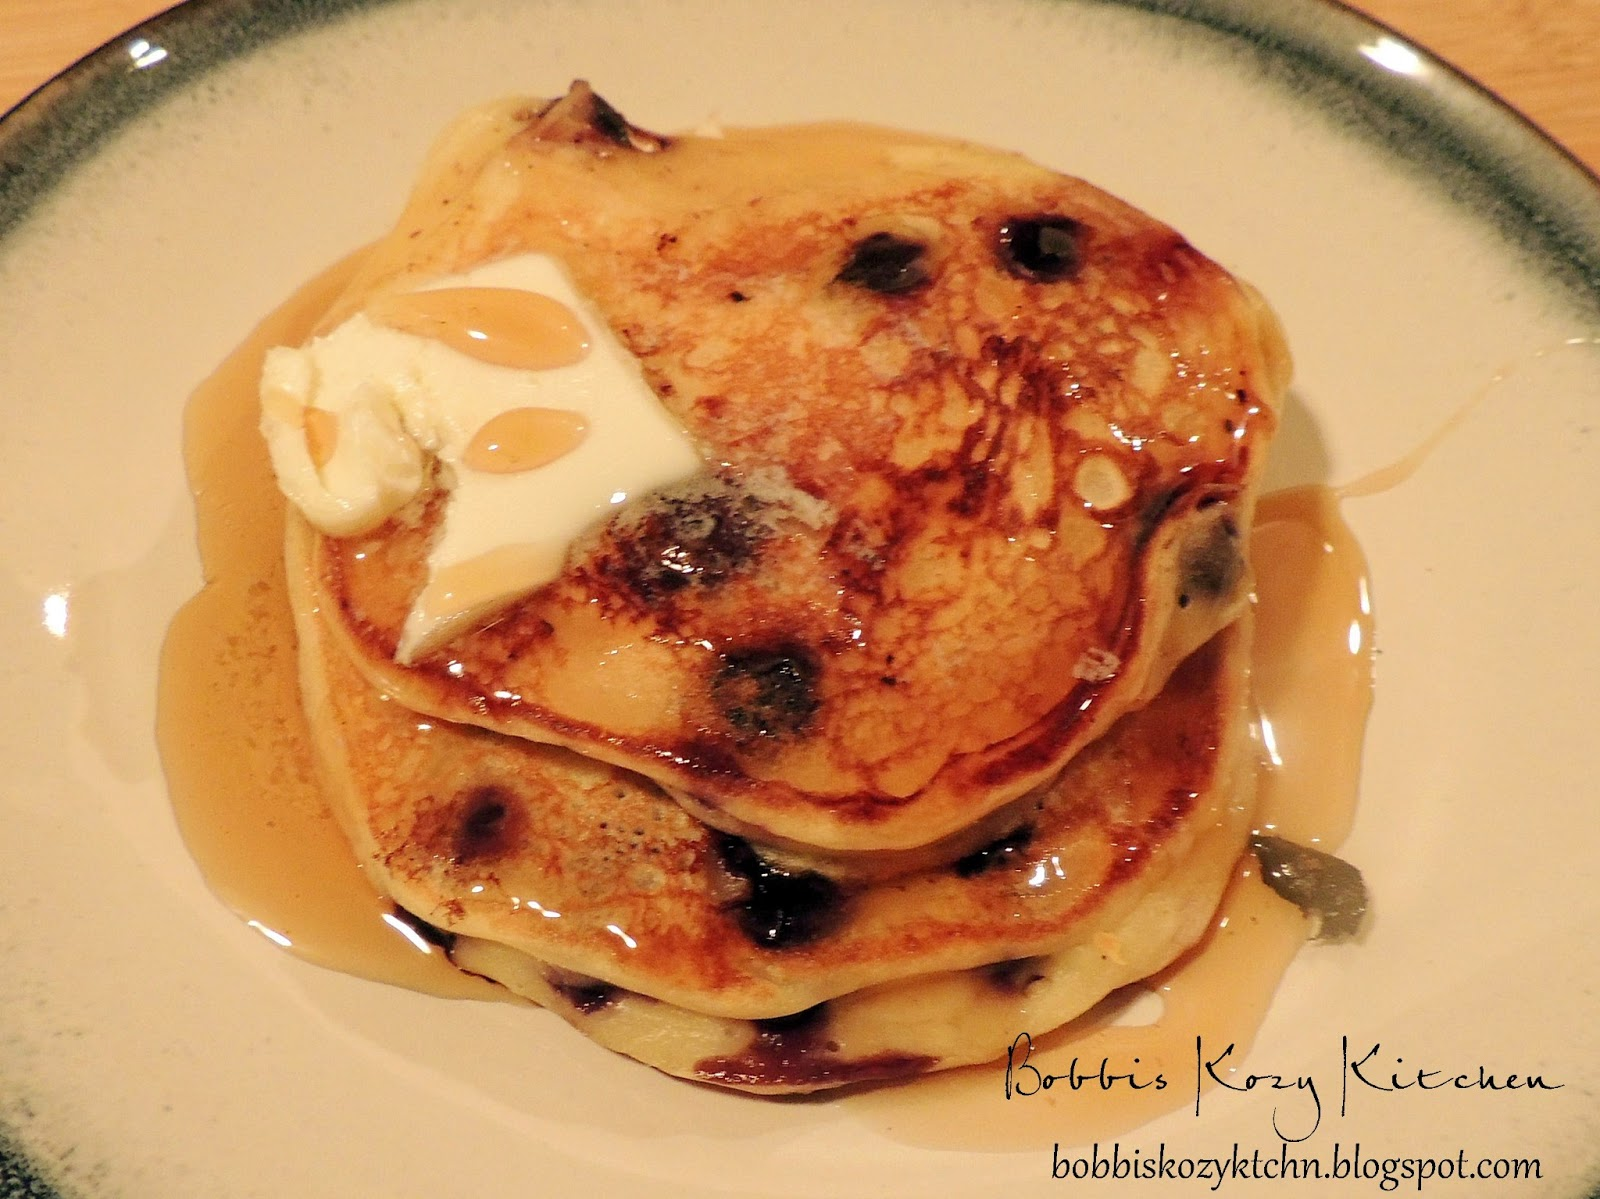 Bobbi's Kozy Kitchen: Blueberry Pancakes with Greek Yogurt and Lemon